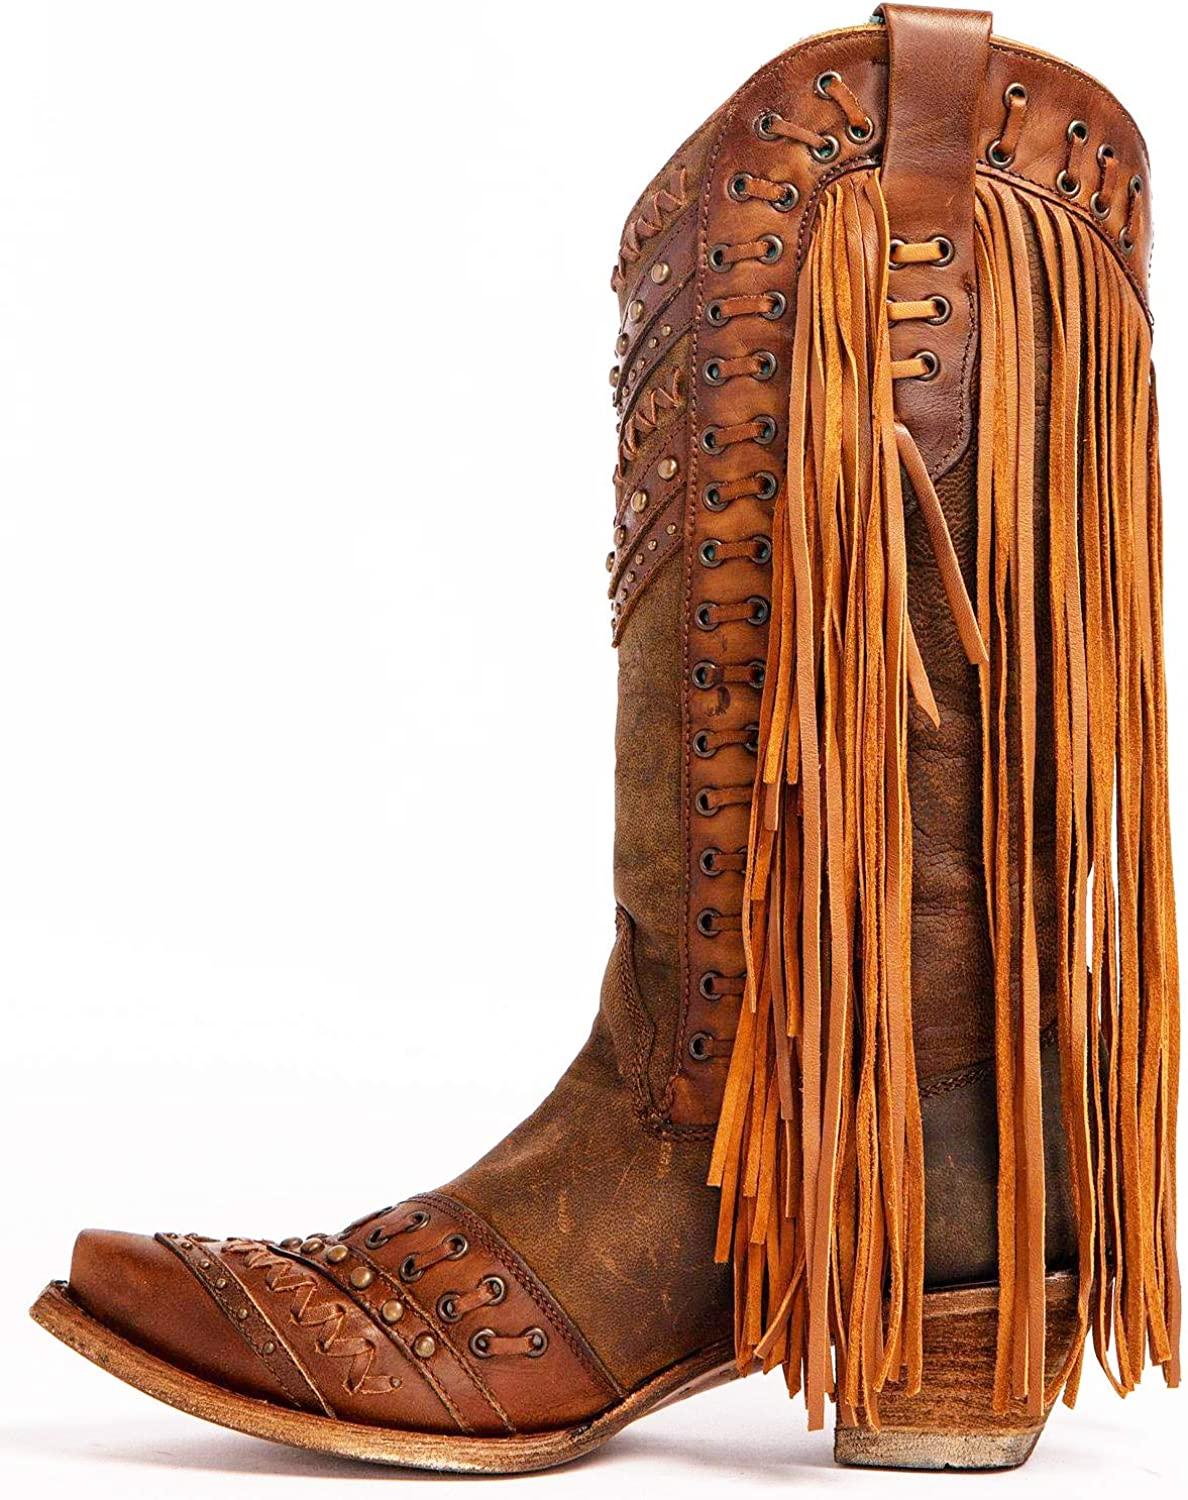 CORRAL Womens Mayela Woven /& Fringed Snip Toe Cowboy Leather Boots 6 Wide Brown//Tan